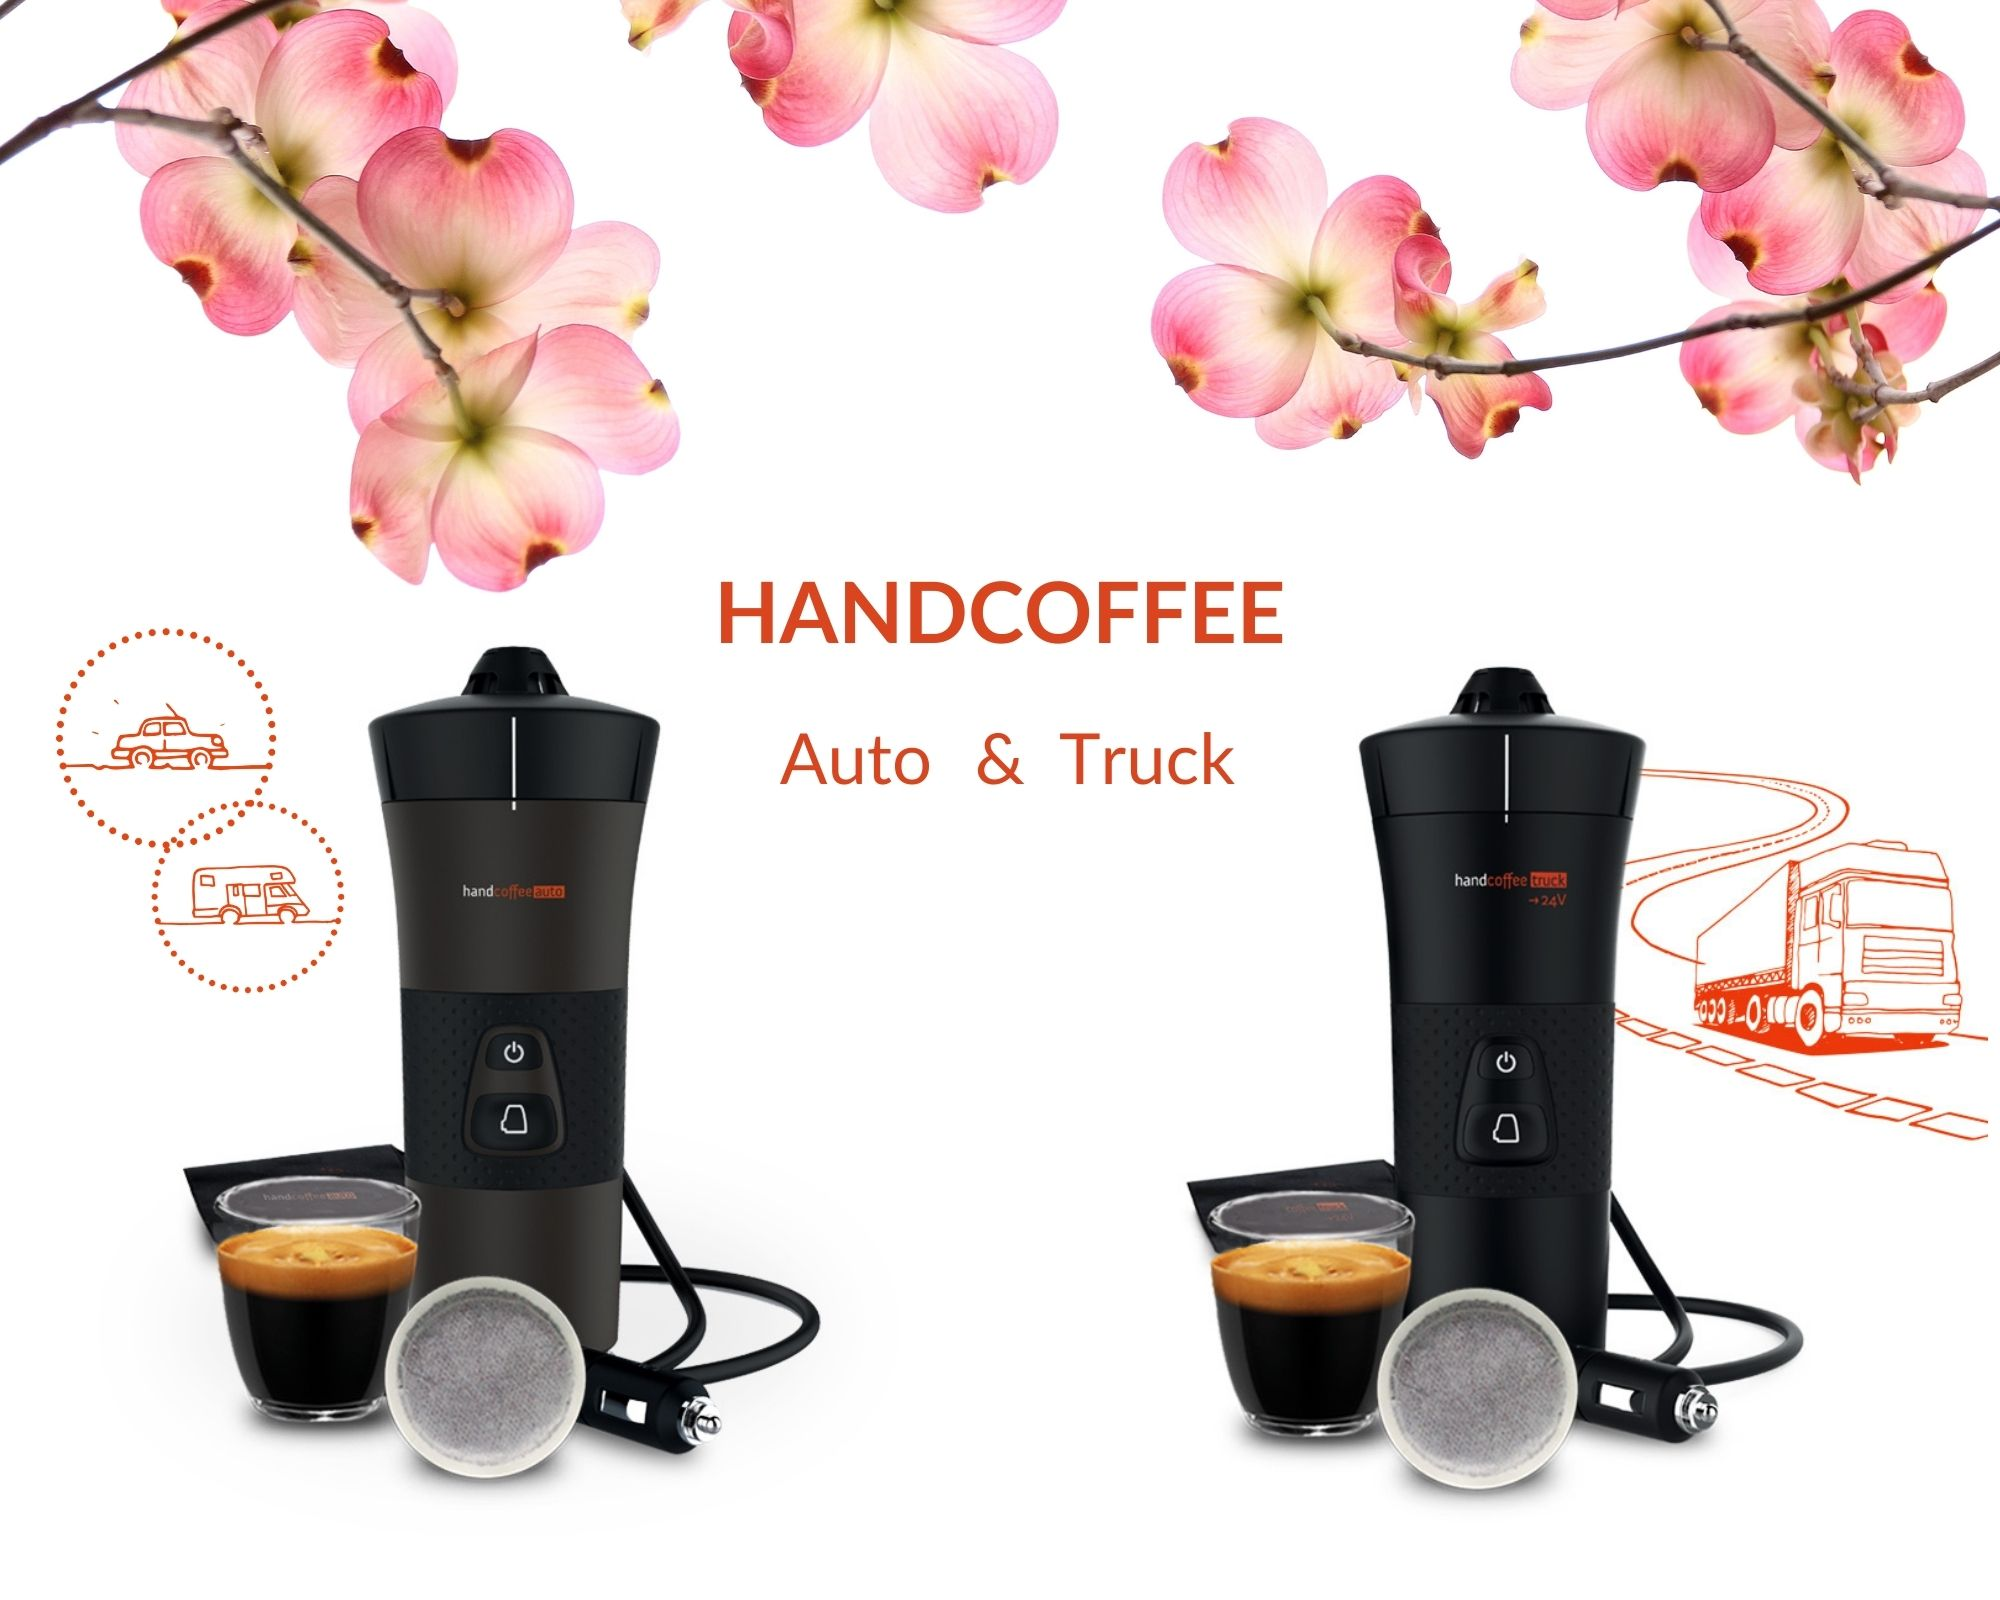 nouvelle handcoffee auto cafetiere 12v